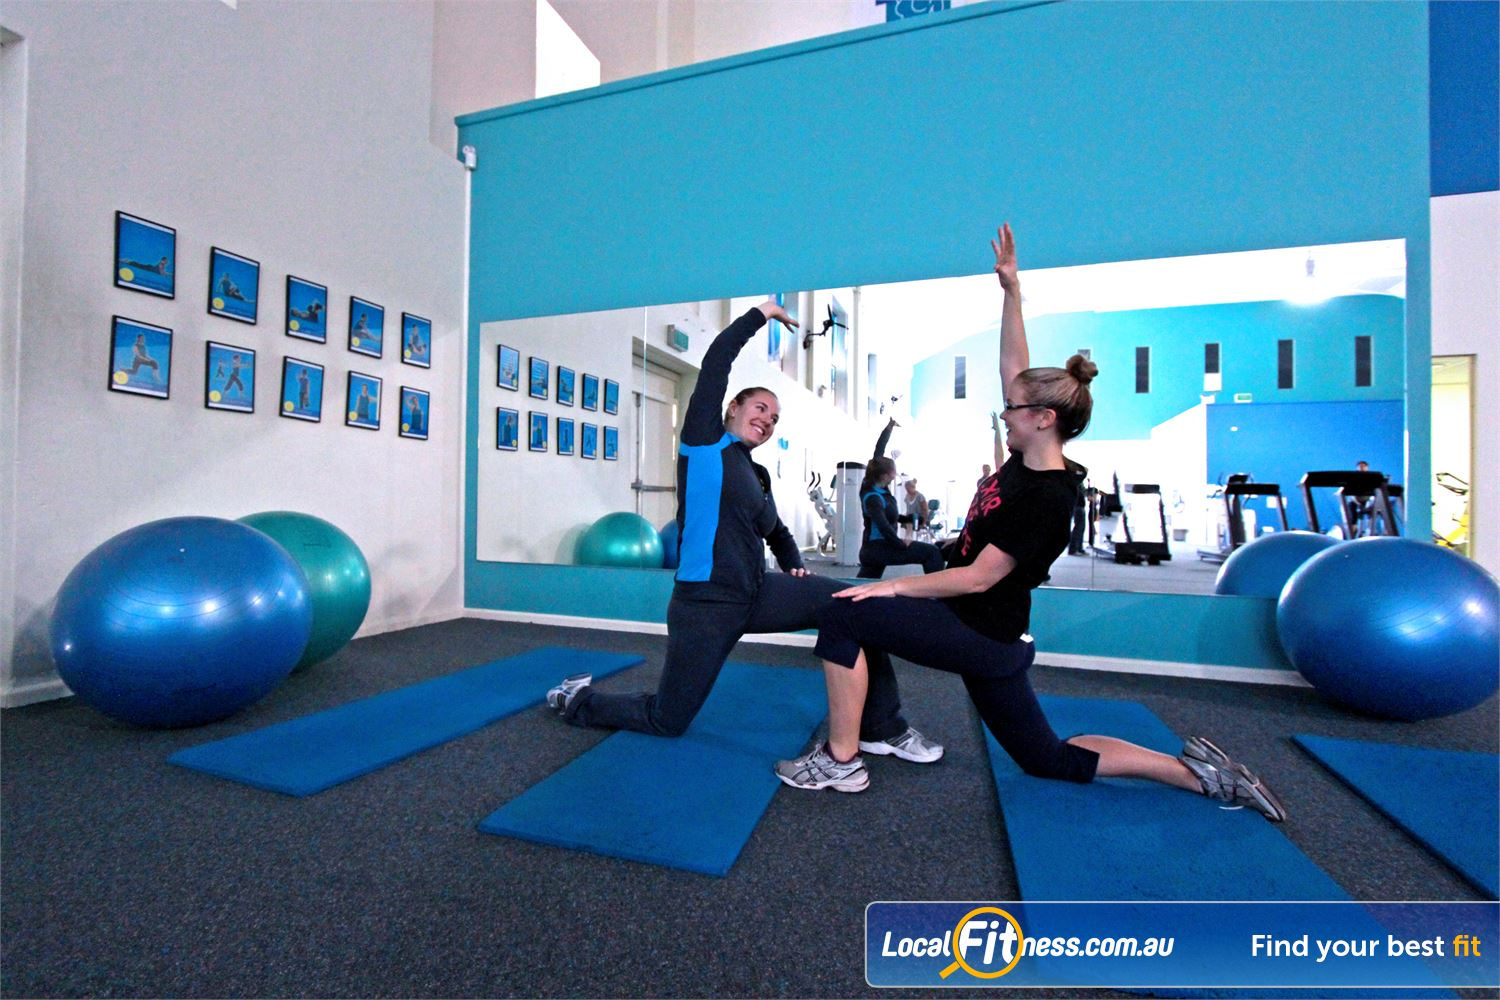 Fernwood Fitness Near Corrimal Fernwood Woonona provides a fully equipped stretching area with fitballs, stretch mats and more.